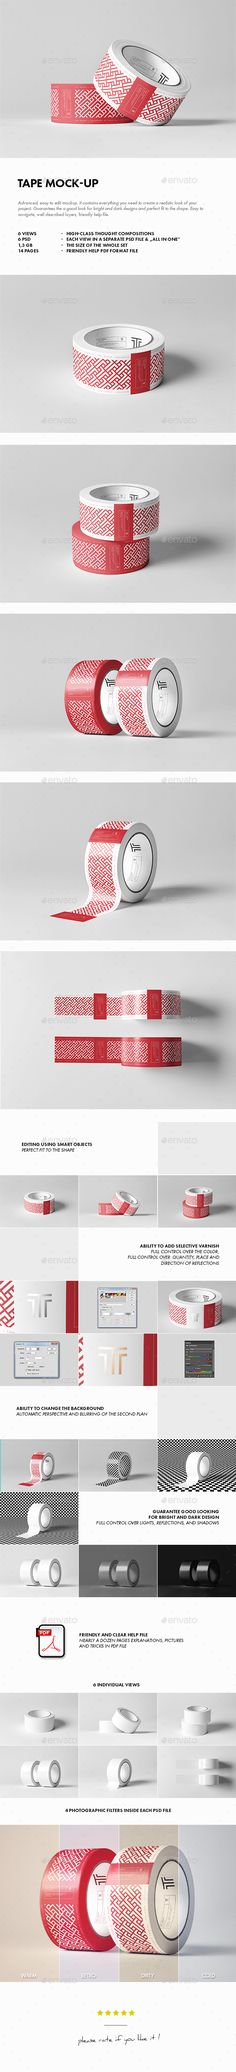 Duct Tape Mockup — Photoshop PSD #stationery #box • Available here → https://graphicriver.net/item/duct-tape-mockup/17899220?ref=pxcr